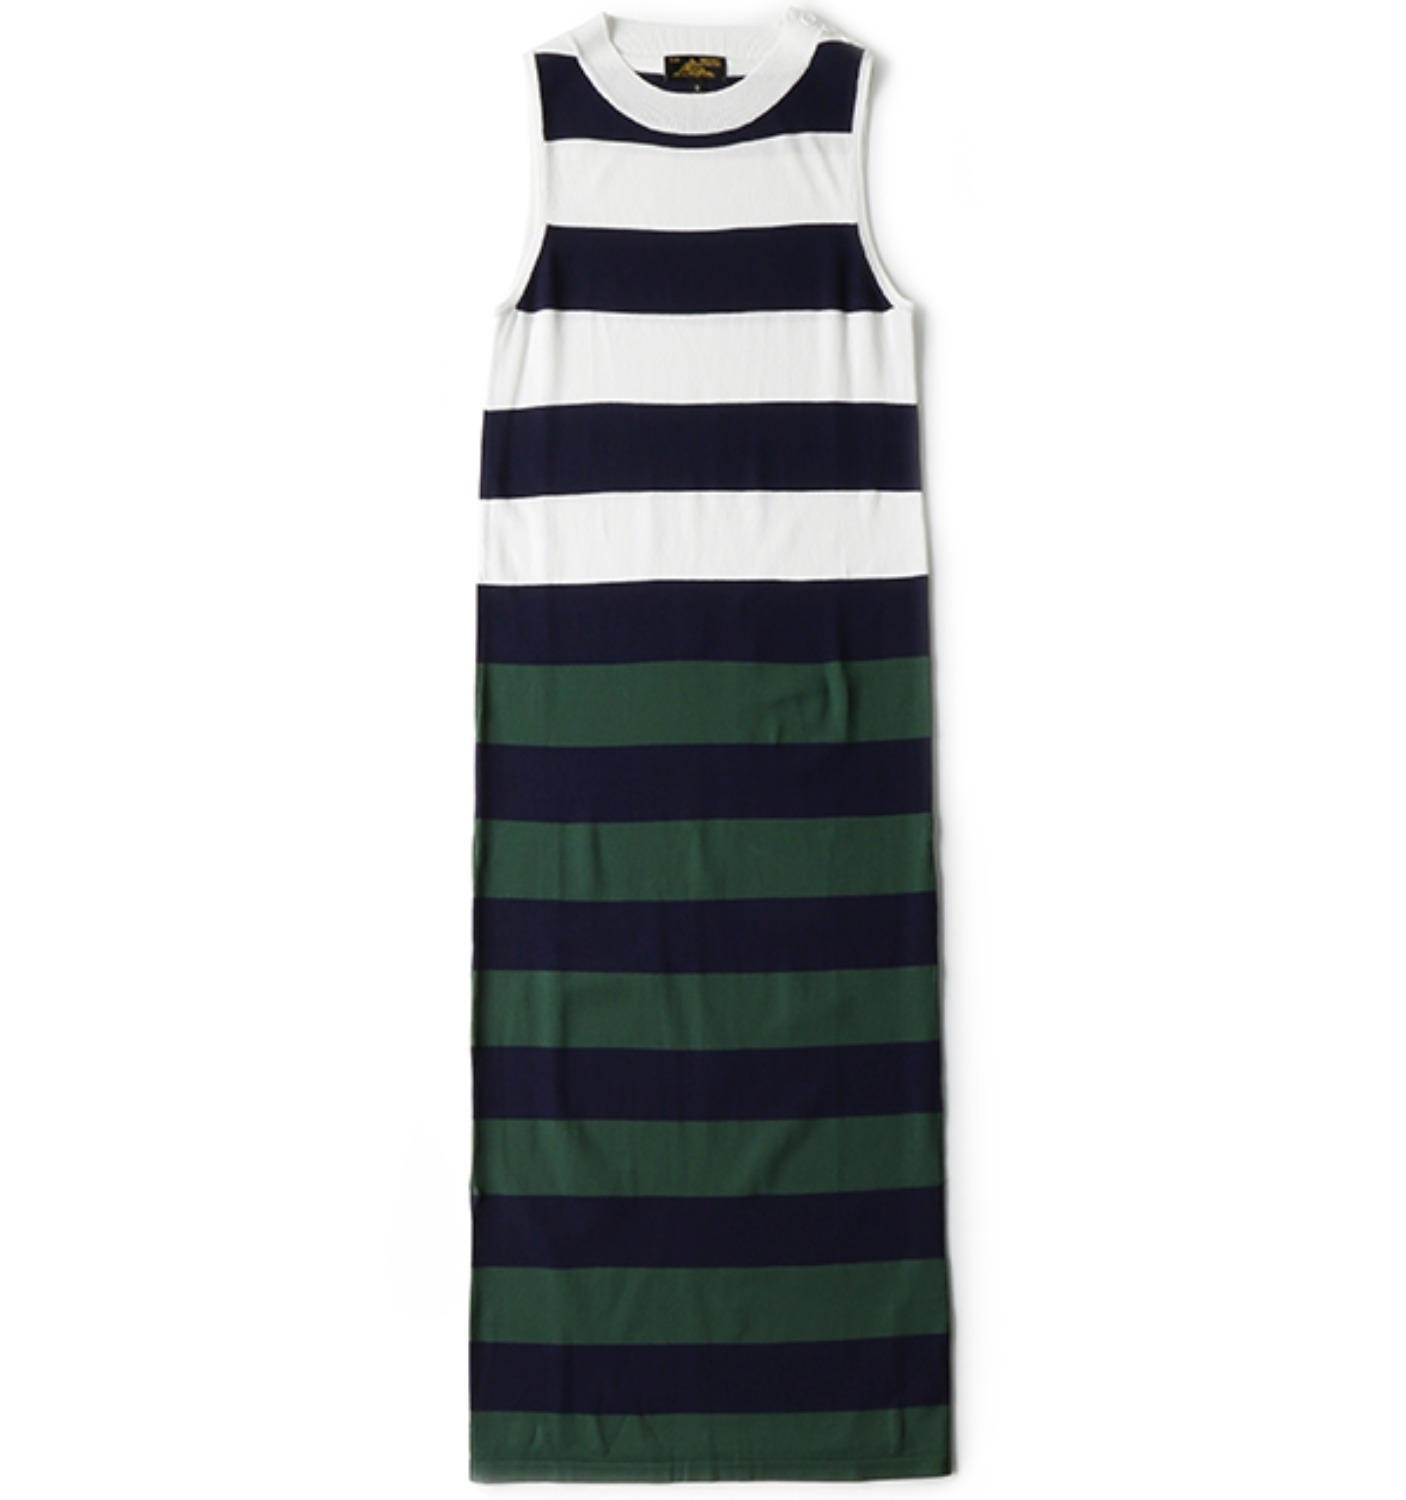 Tricolor wide stripes dress (12732F)